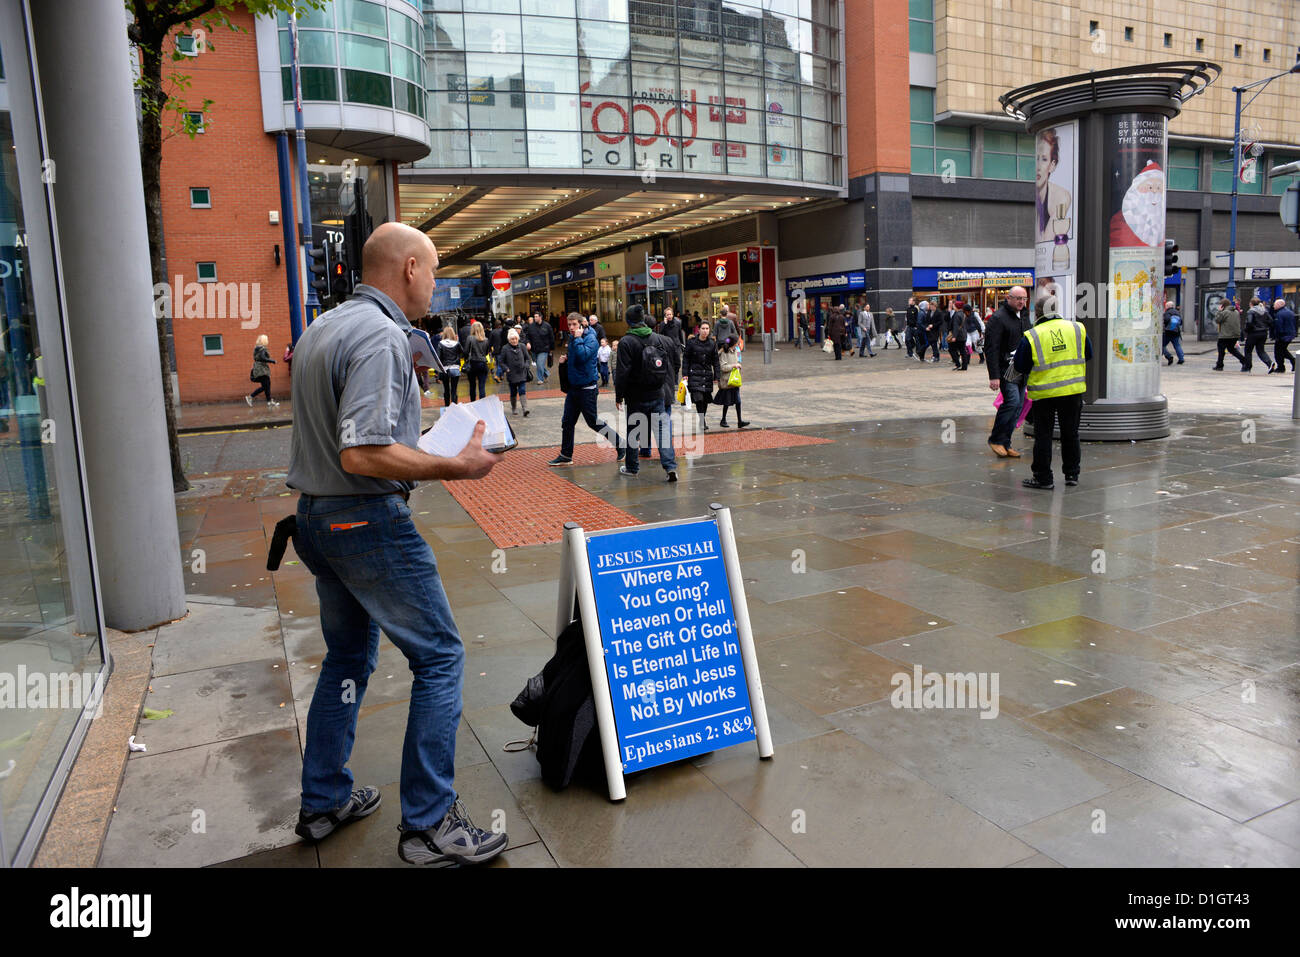 man preaching fundamental christianity in the the centre of Manchester a few days before Christmas. - Stock Image